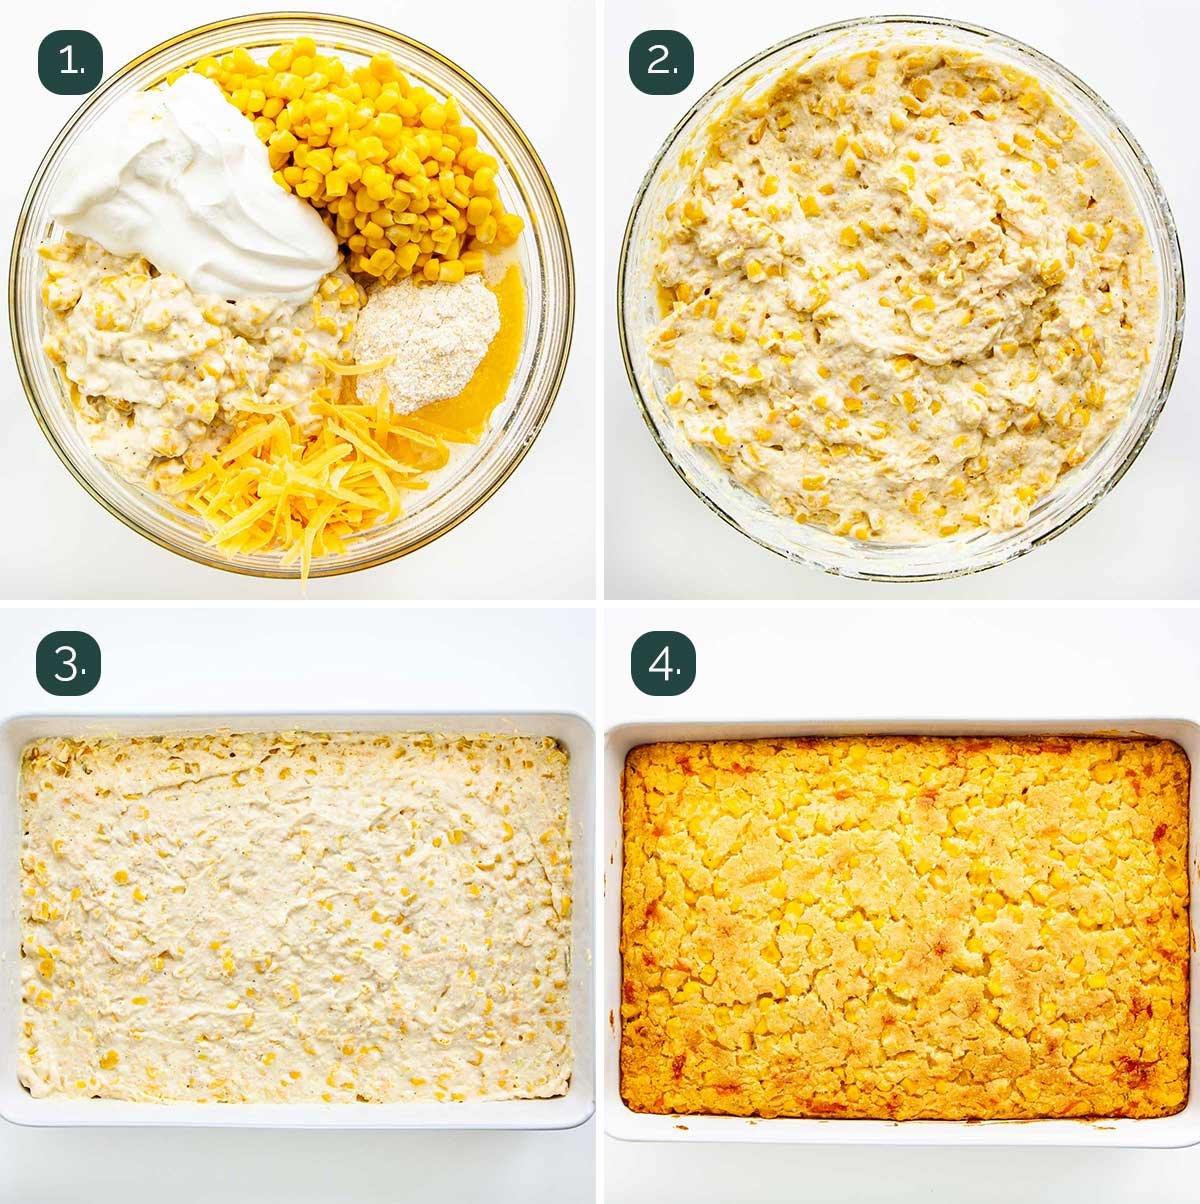 process shots showing how to make corn casserole.